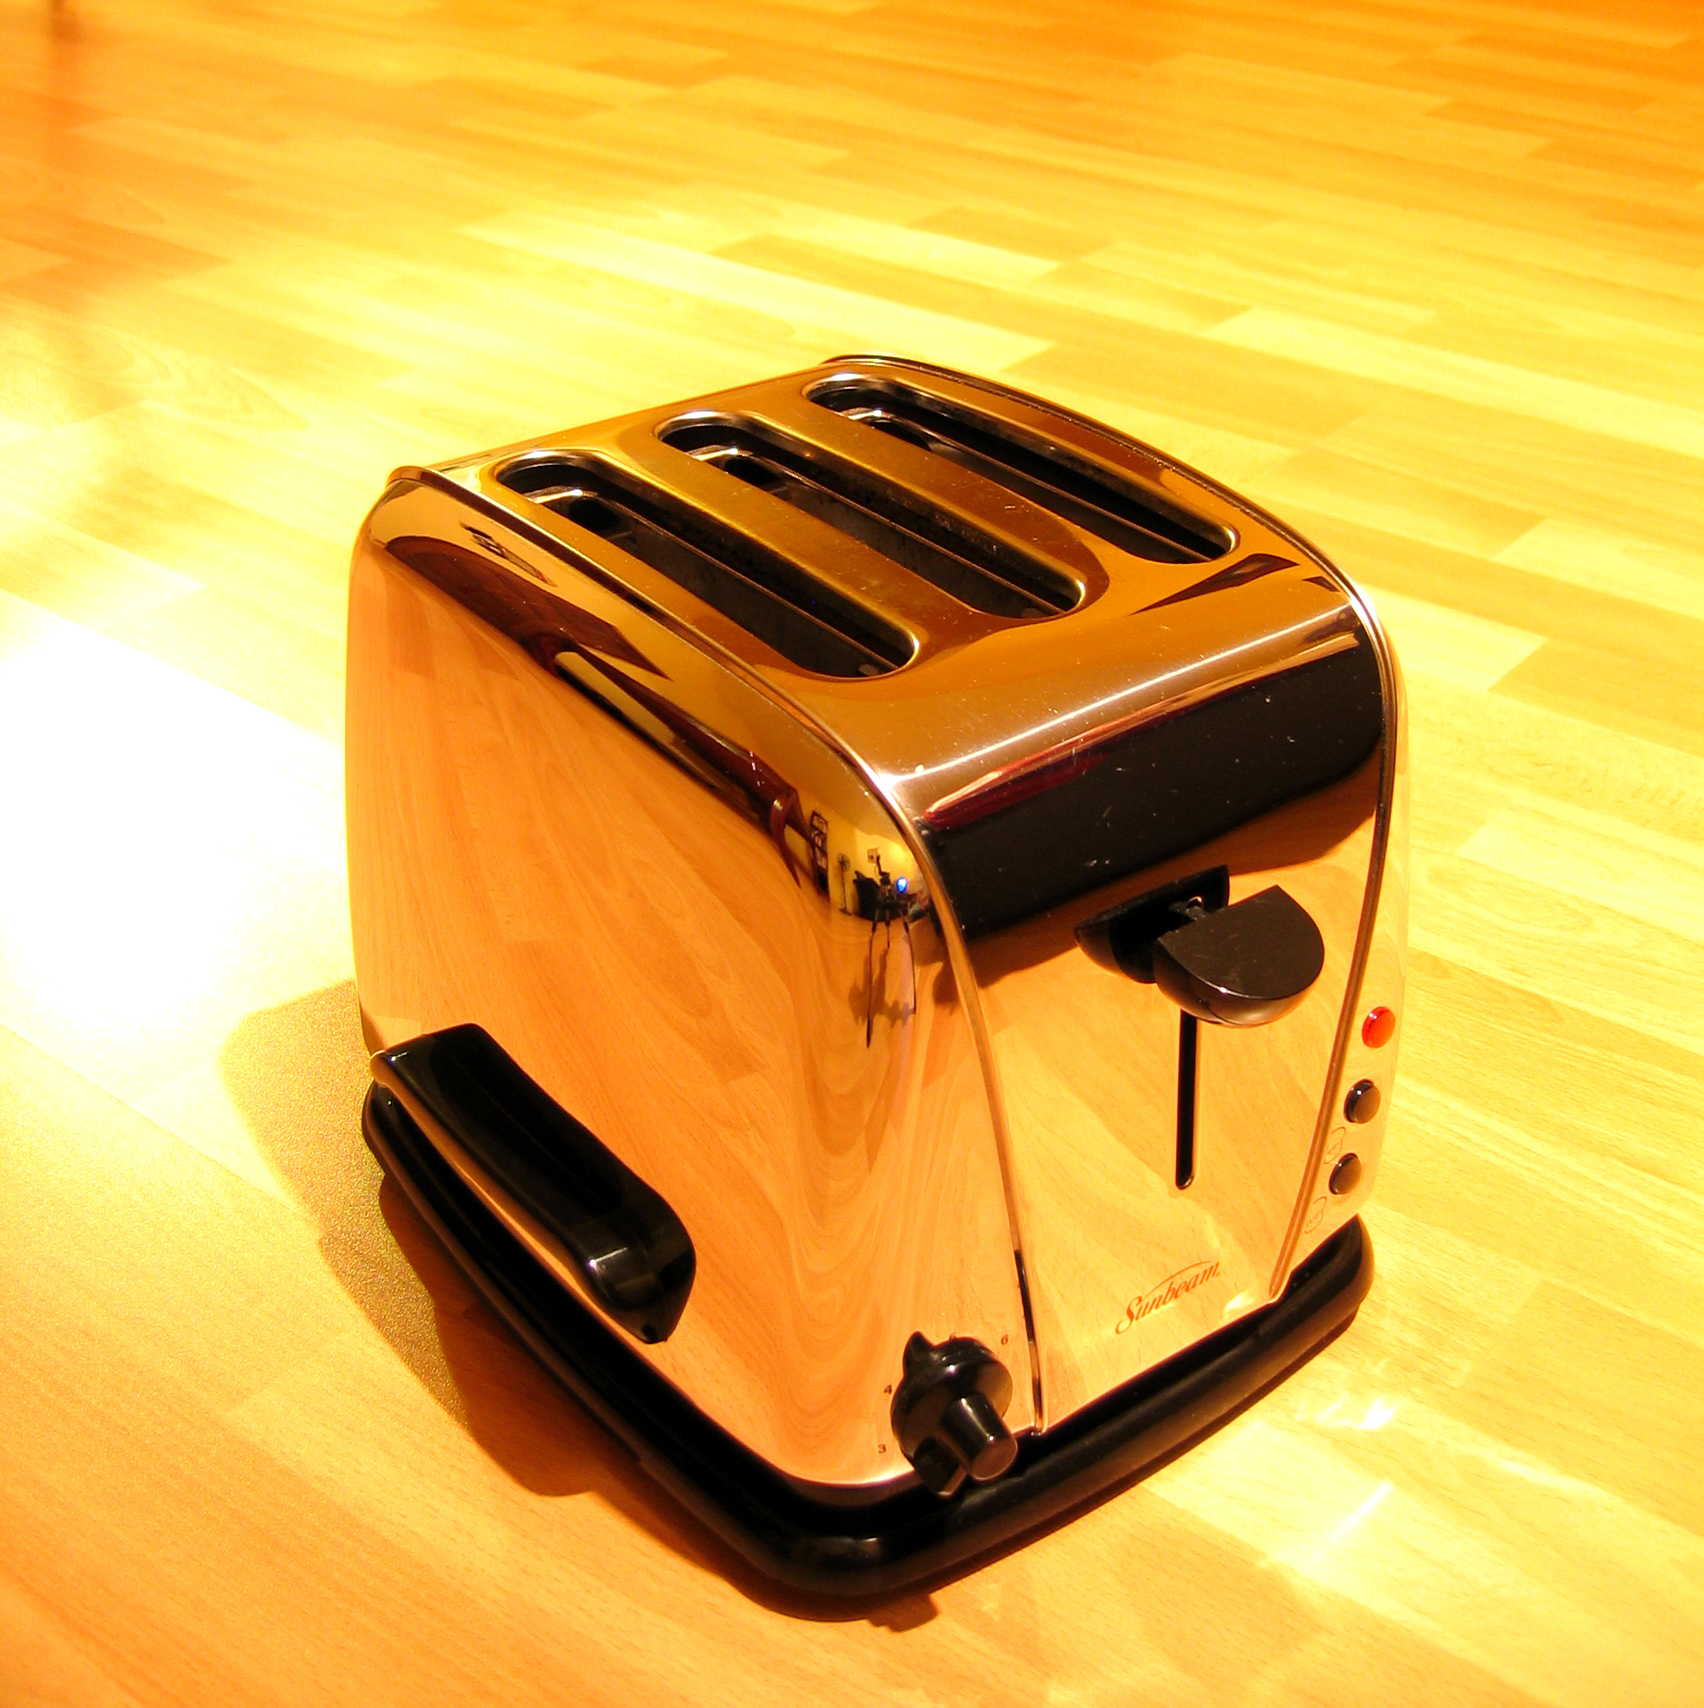 Old Toaster for Recycling